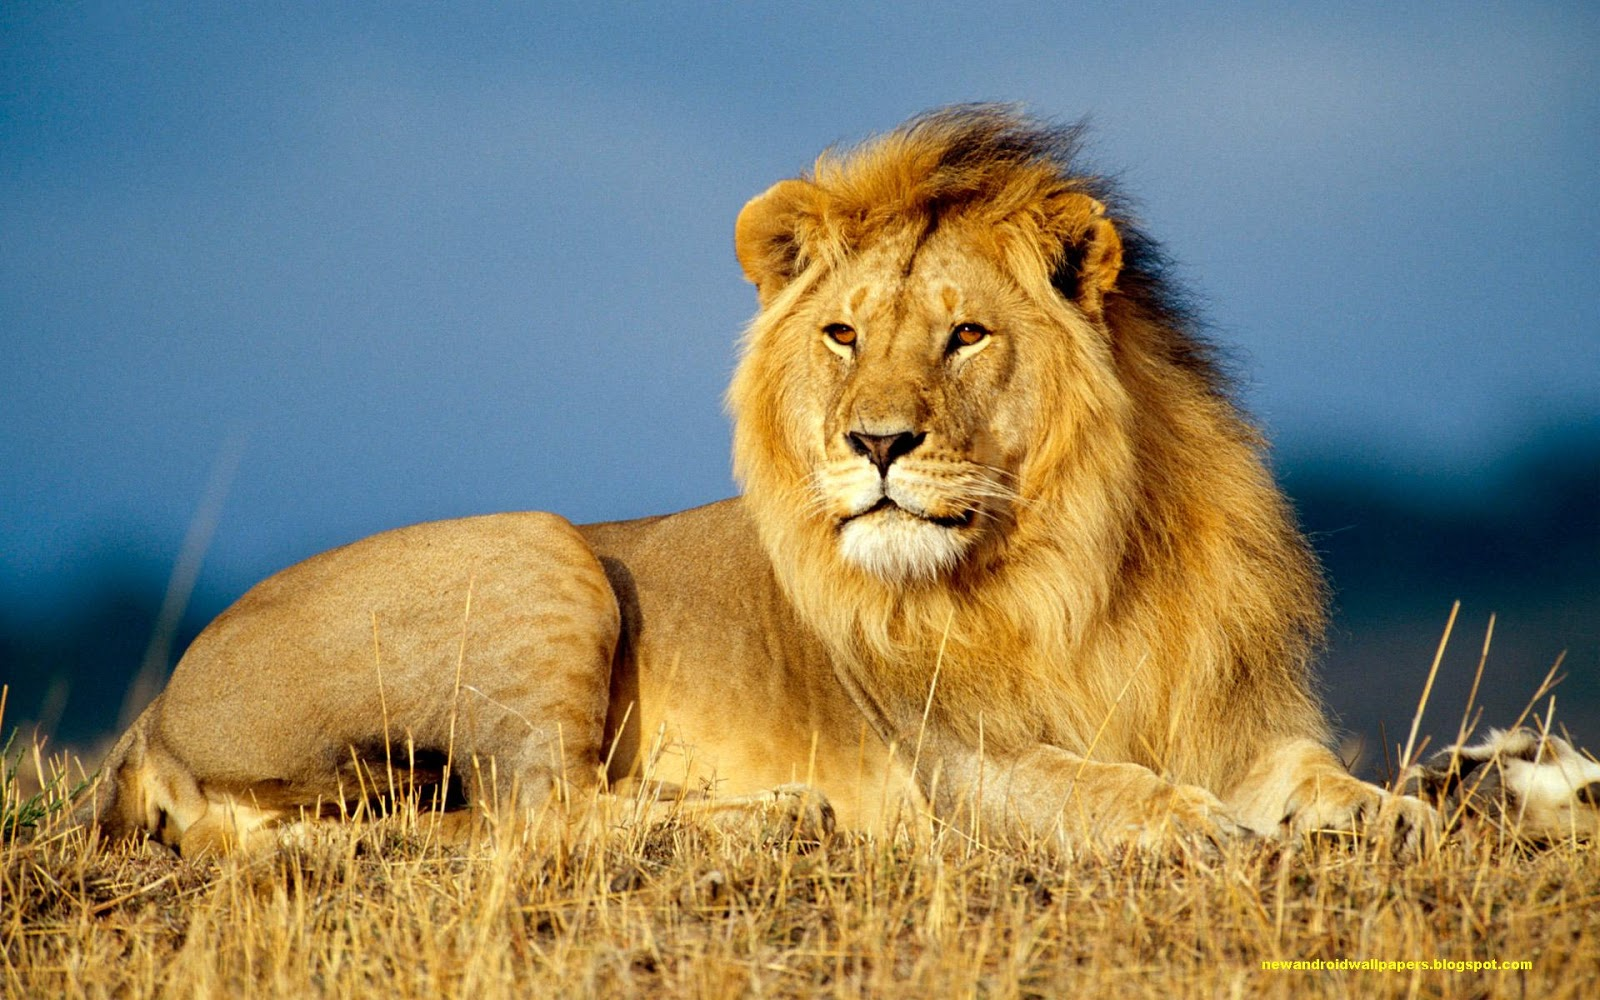 dangerous and nice lion wallpapers hd for android, desktop, mac